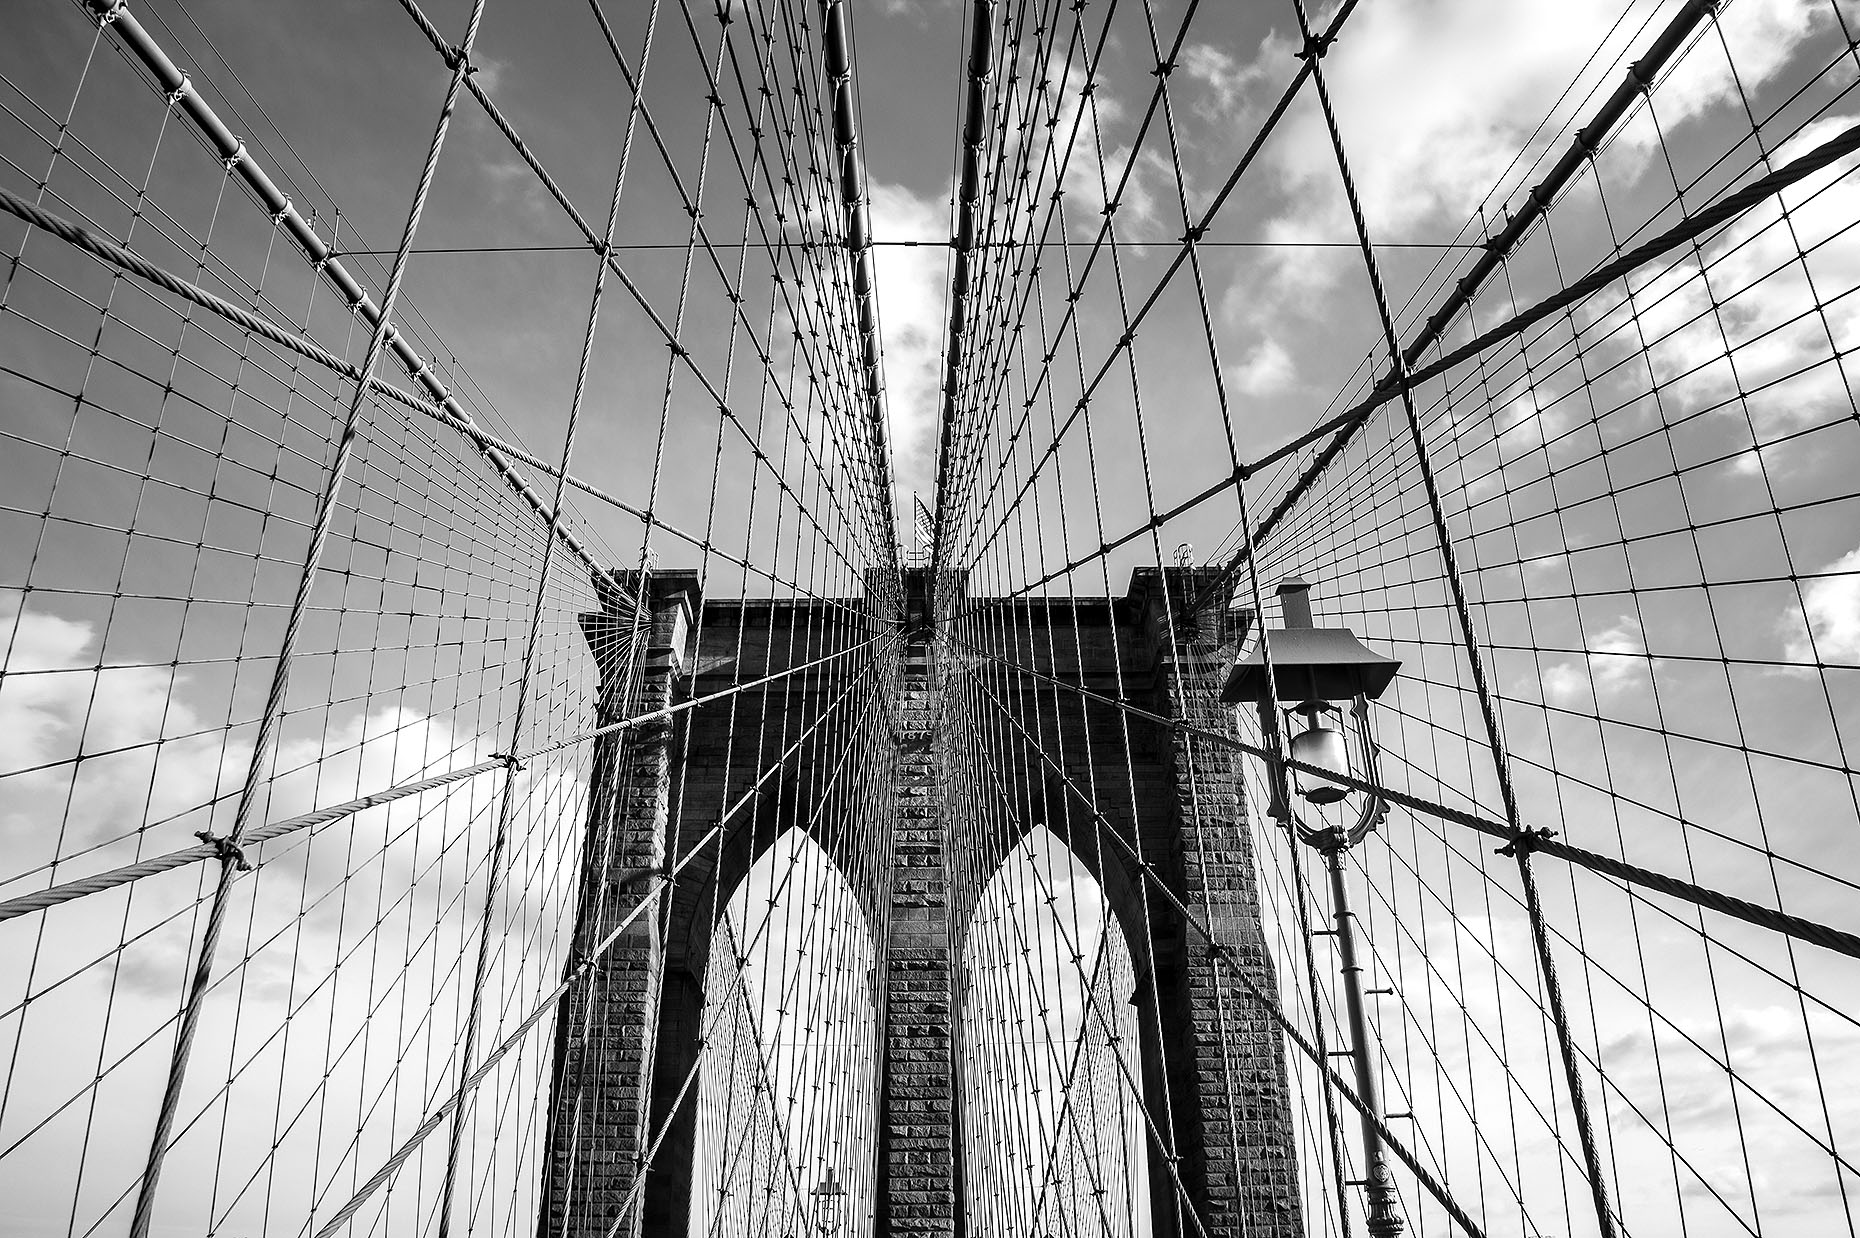 BrooklynBridge_02-bw_webuse.jpg